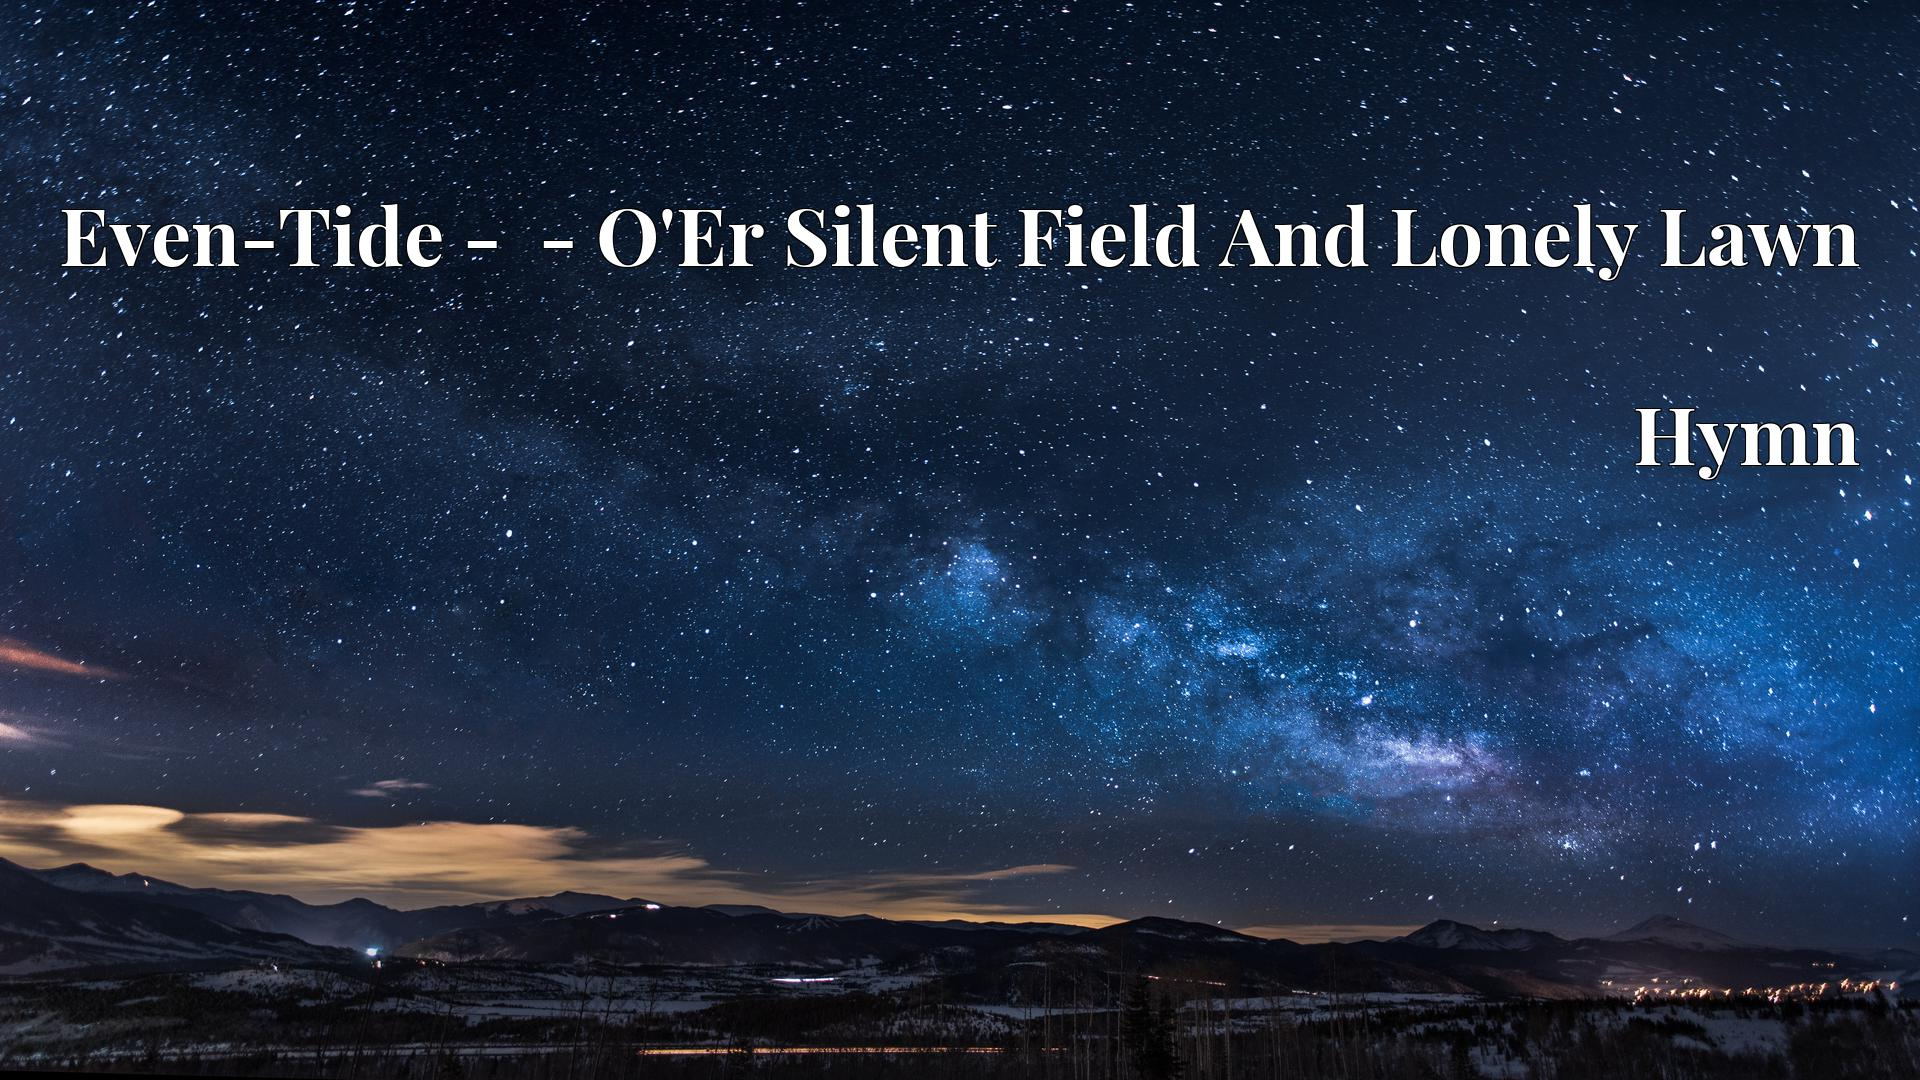 Even-Tide -  - O'Er Silent Field And Lonely Lawn - Hymn